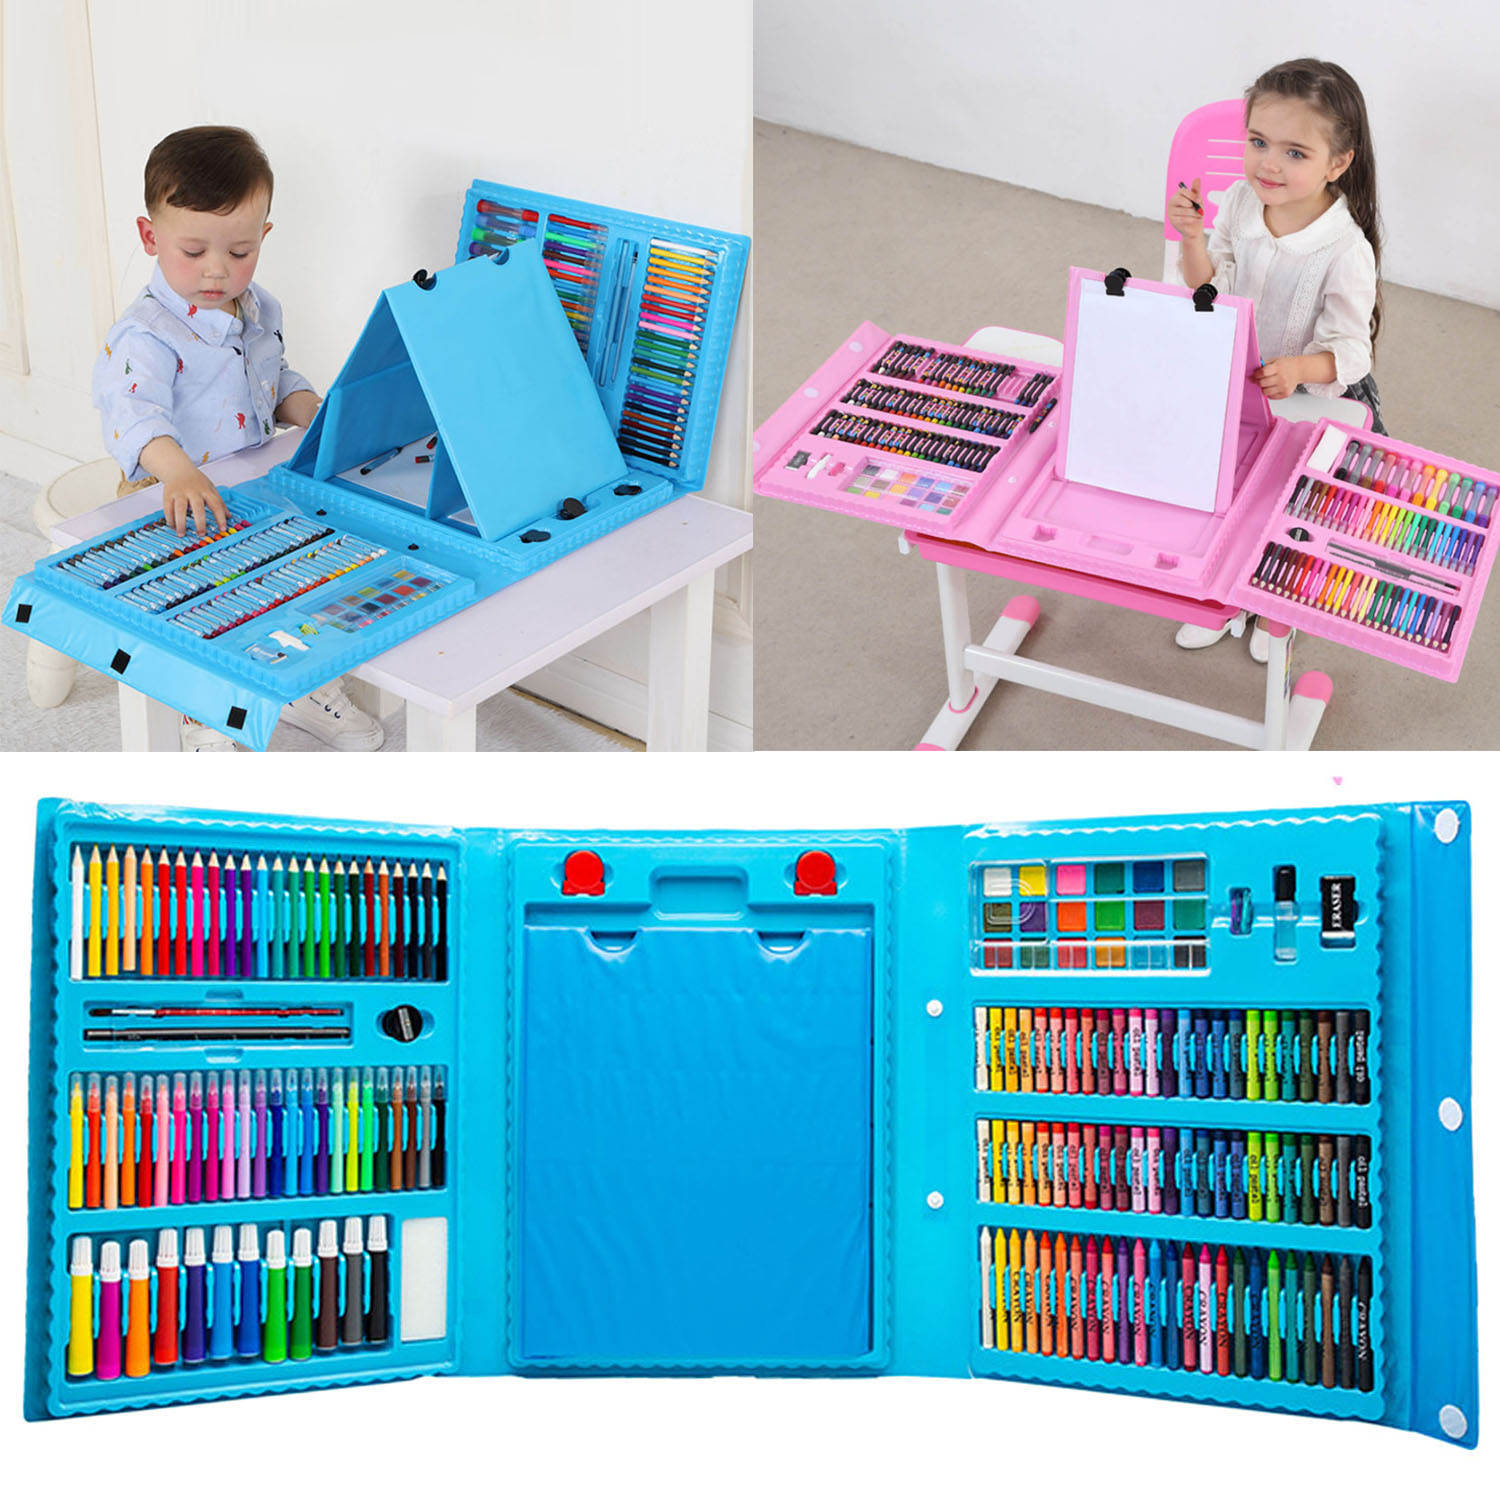 Kids Colorful Crayons/Oil Painting Sticks/Markers/Colored Pencils/Watercolor Pigment Painting Drawing Graffiti Tool ToyKids Colorful Crayons/Oil Painting Sticks/Markers/Colored Pencils/Watercolor Pigment Painting Drawing Graffiti Tool Toy